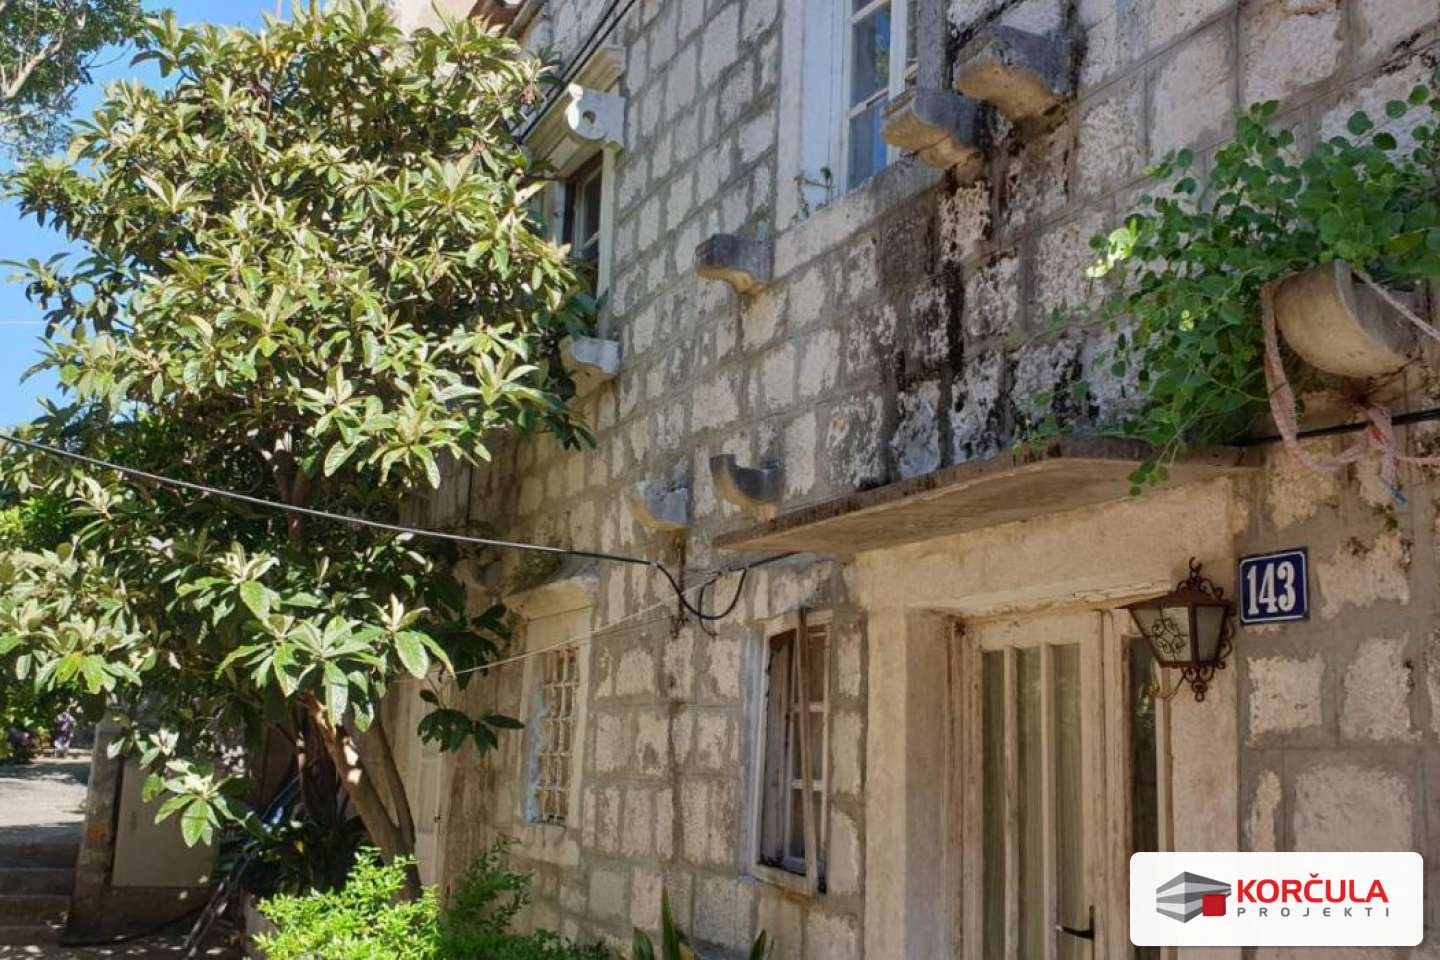 Old stone house near the sea - renovation project